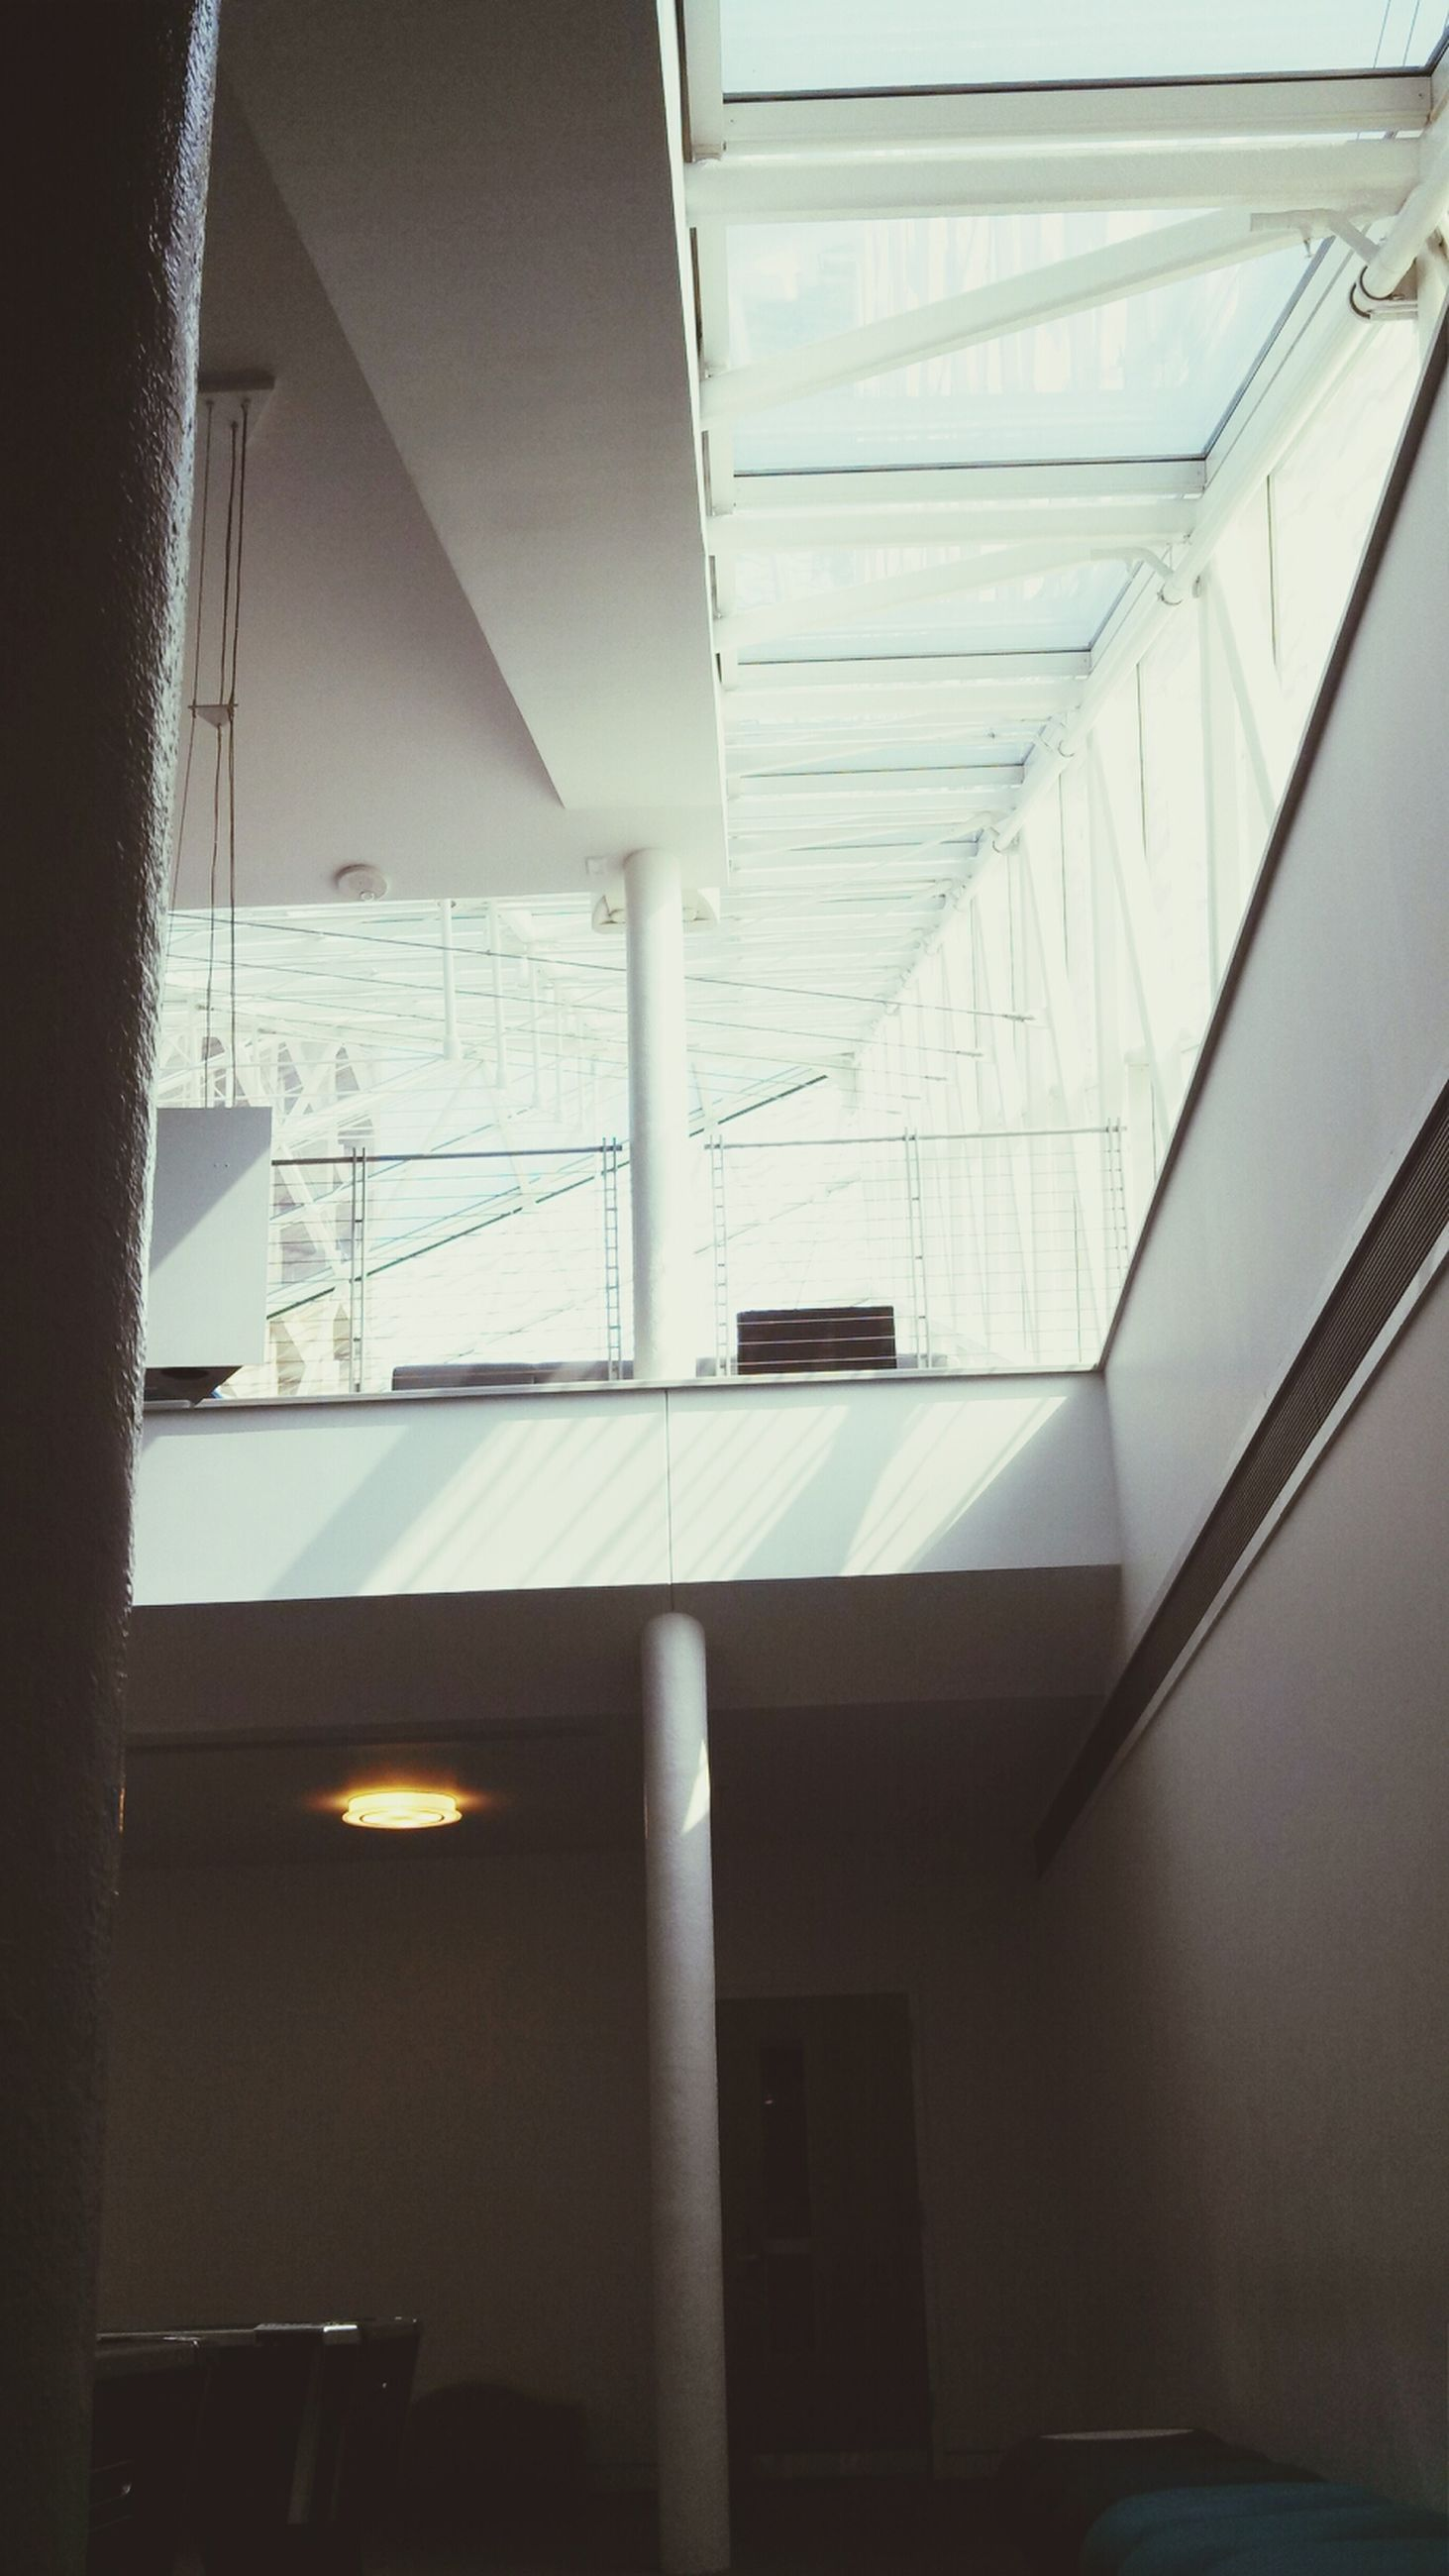 indoors, architecture, built structure, window, low angle view, ceiling, glass - material, building, modern, building exterior, railing, transparent, no people, day, sunlight, transportation, reflection, balcony, skylight, sky